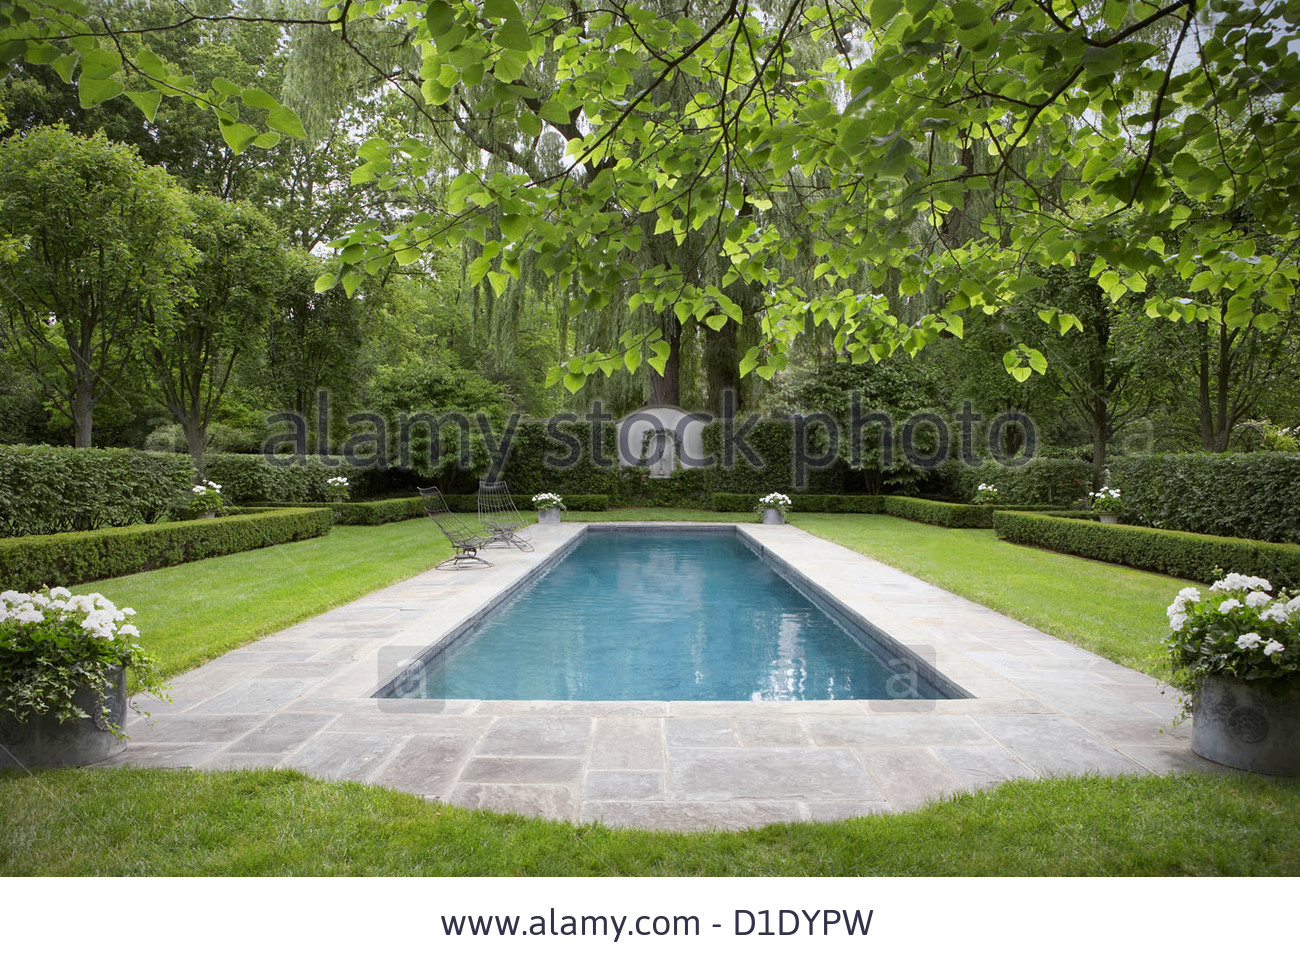 swimming-pools-formal-shaped-hedge-garden-with-narrow-pool-bluestone-D1DYPW